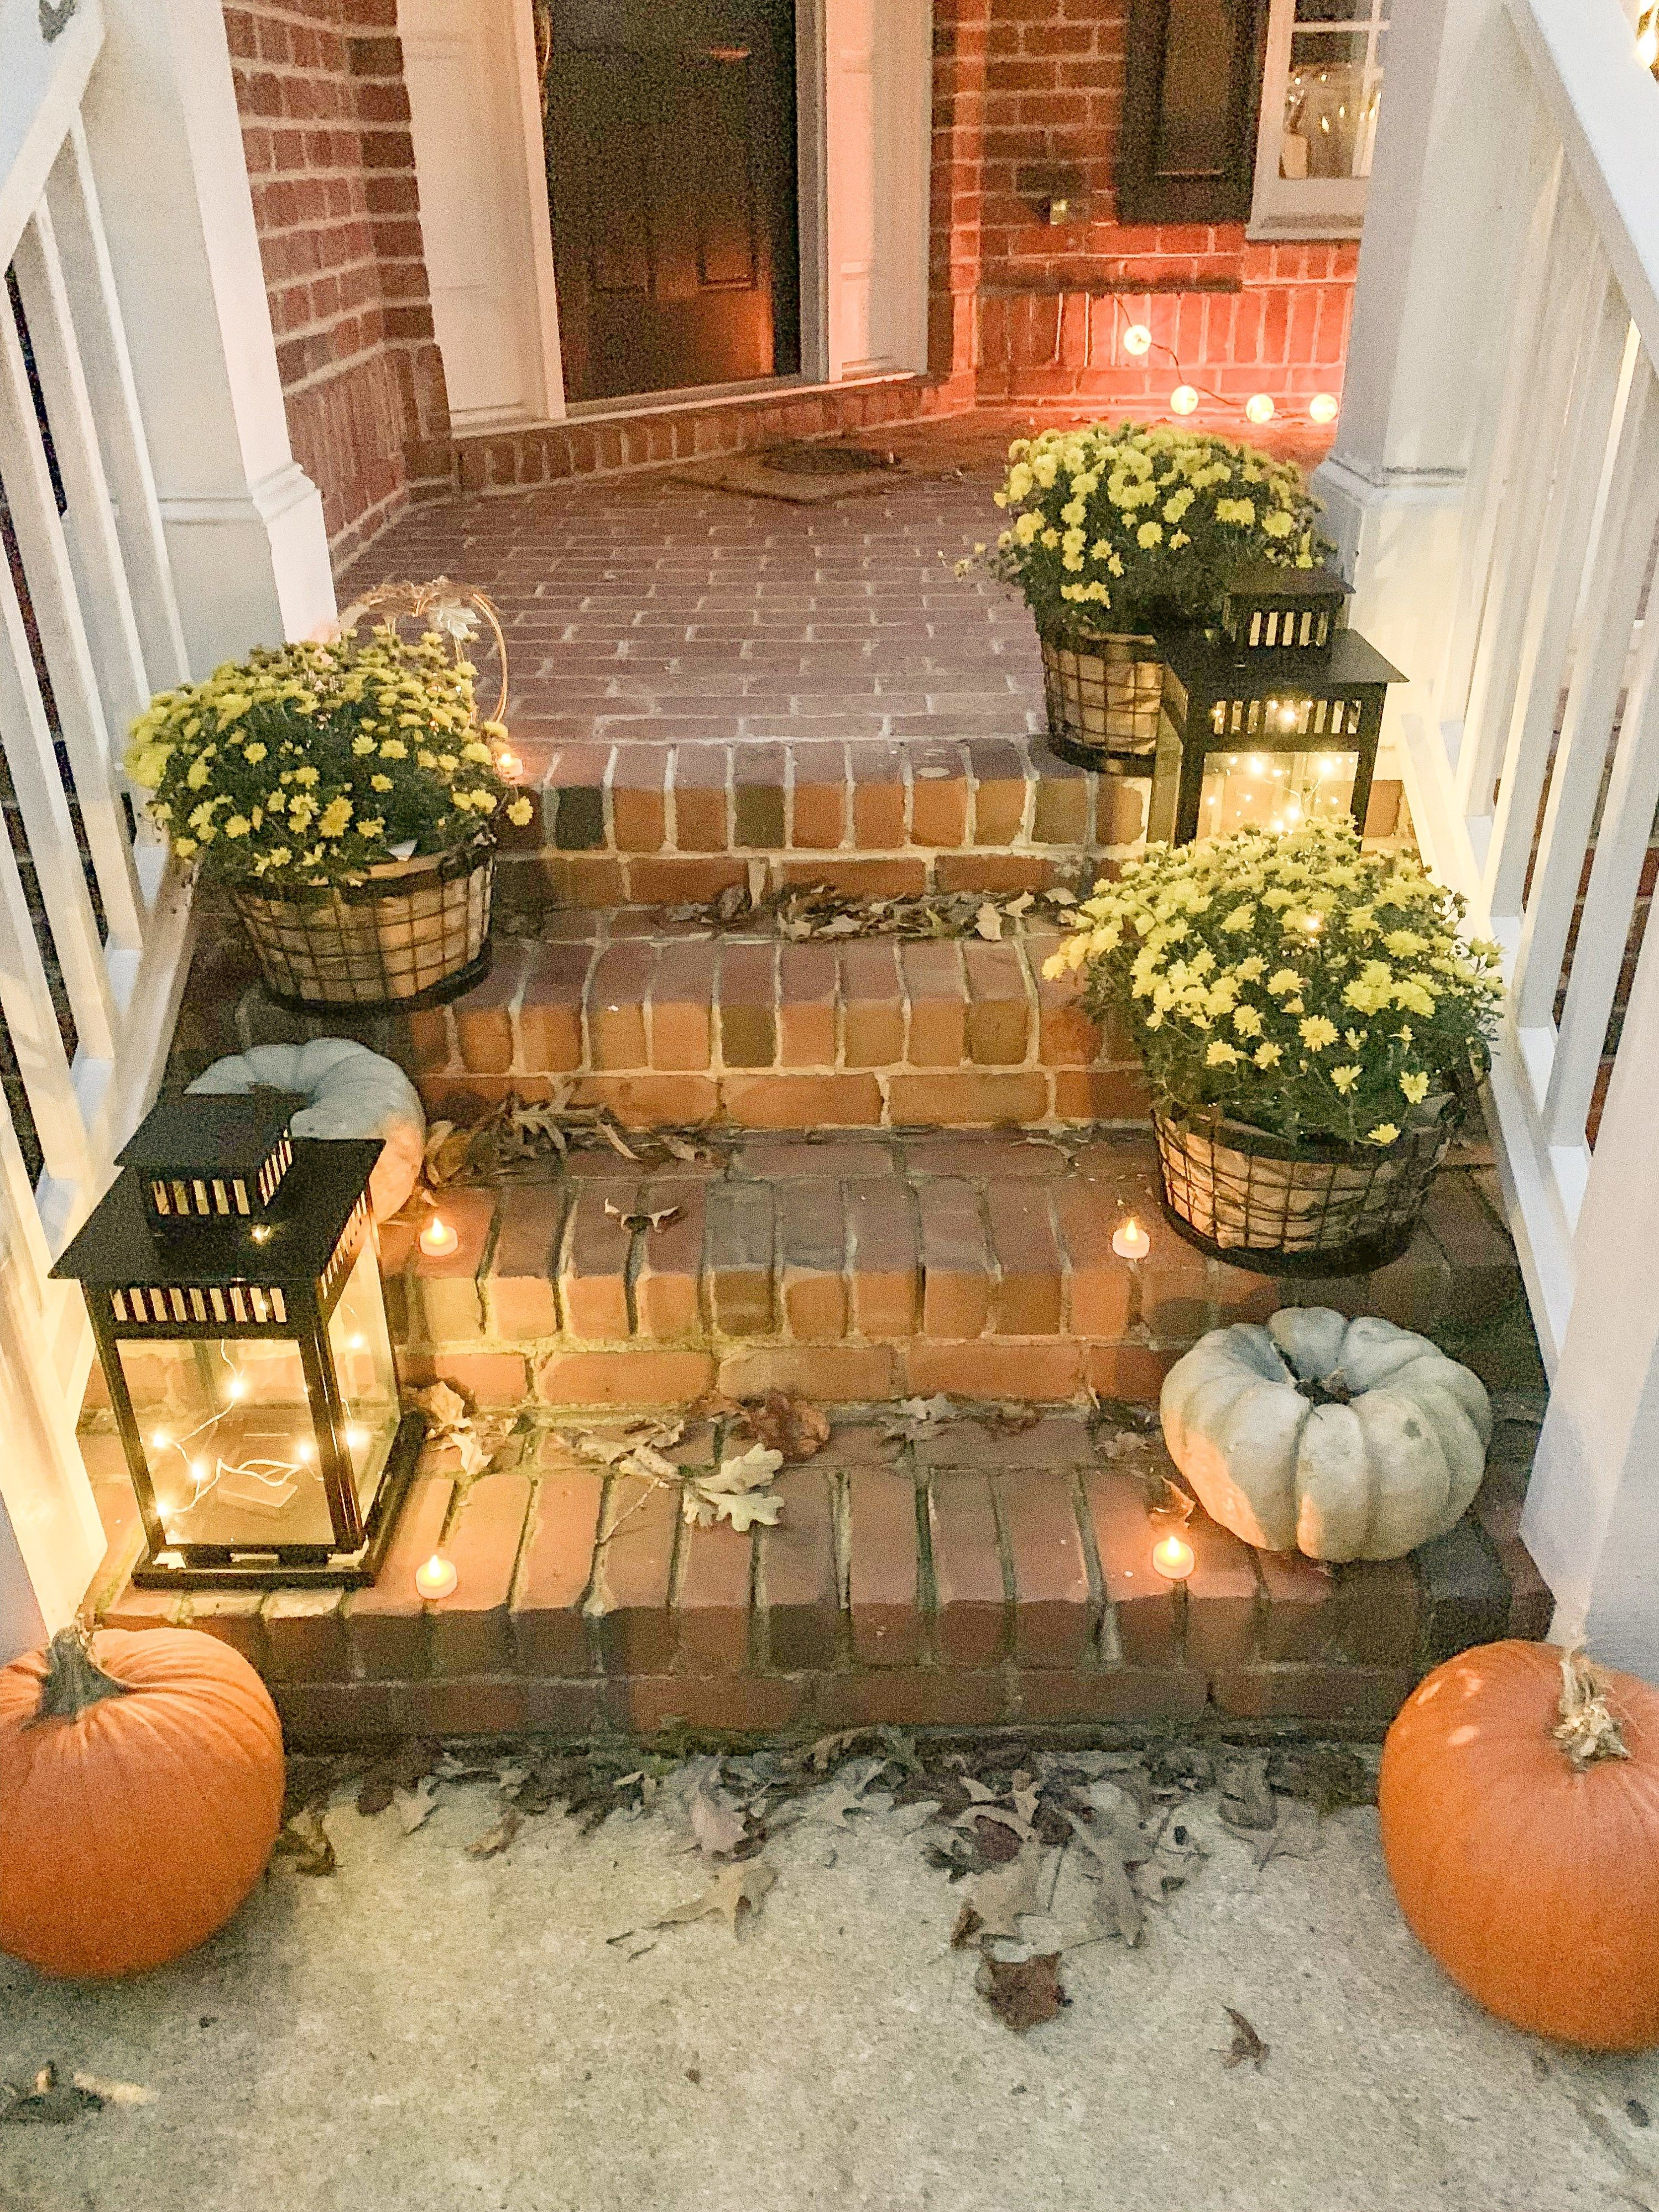 How To Decorate Your Front Porch For Fall From Pumpkins To Mums To